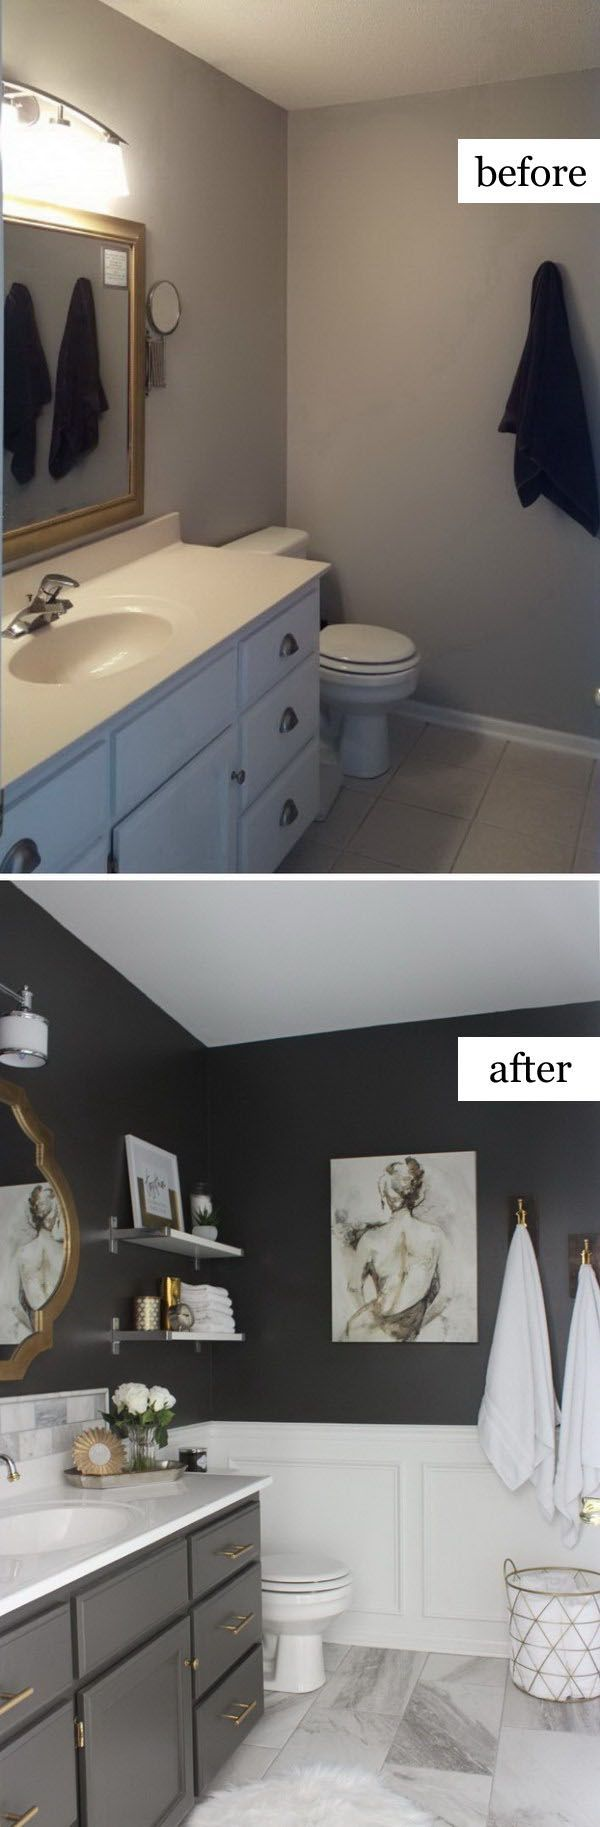 Before And After Makeovers Most Beautiful Bathroom Remodeling - Beautiful bathroom makeovers